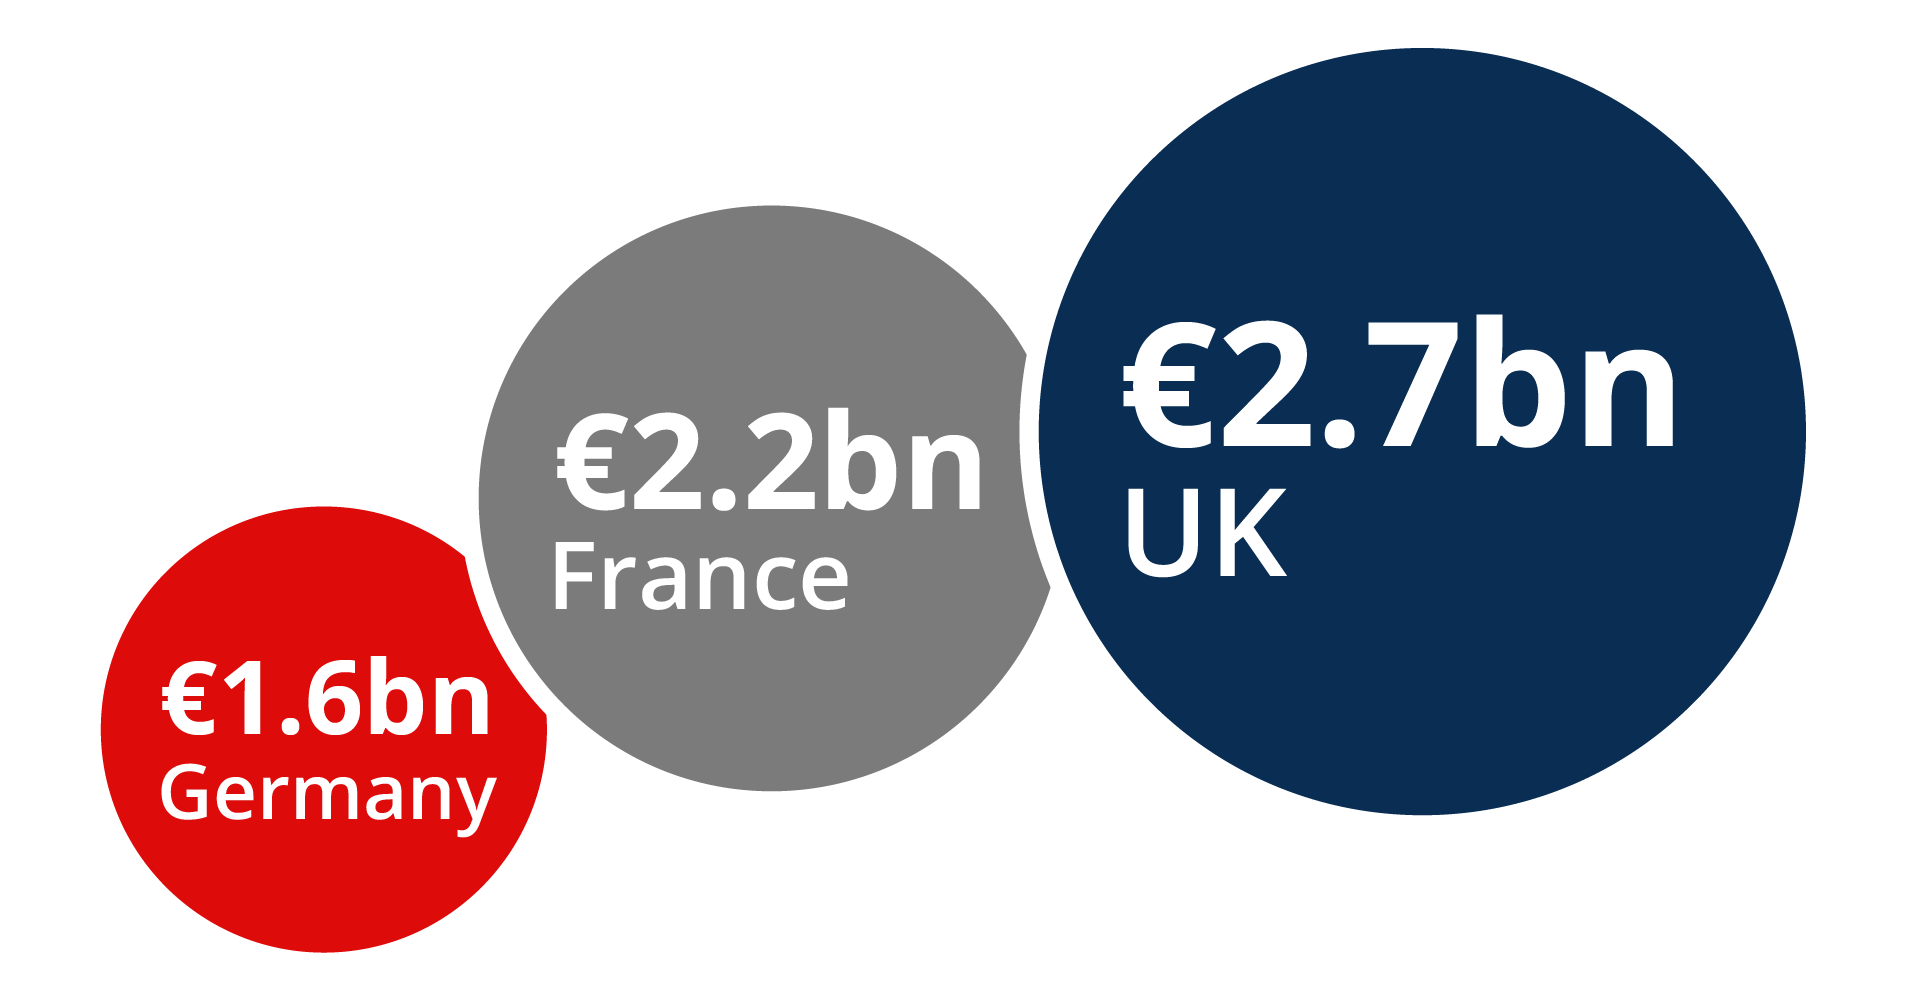 UK VC investment compared to France and Germany